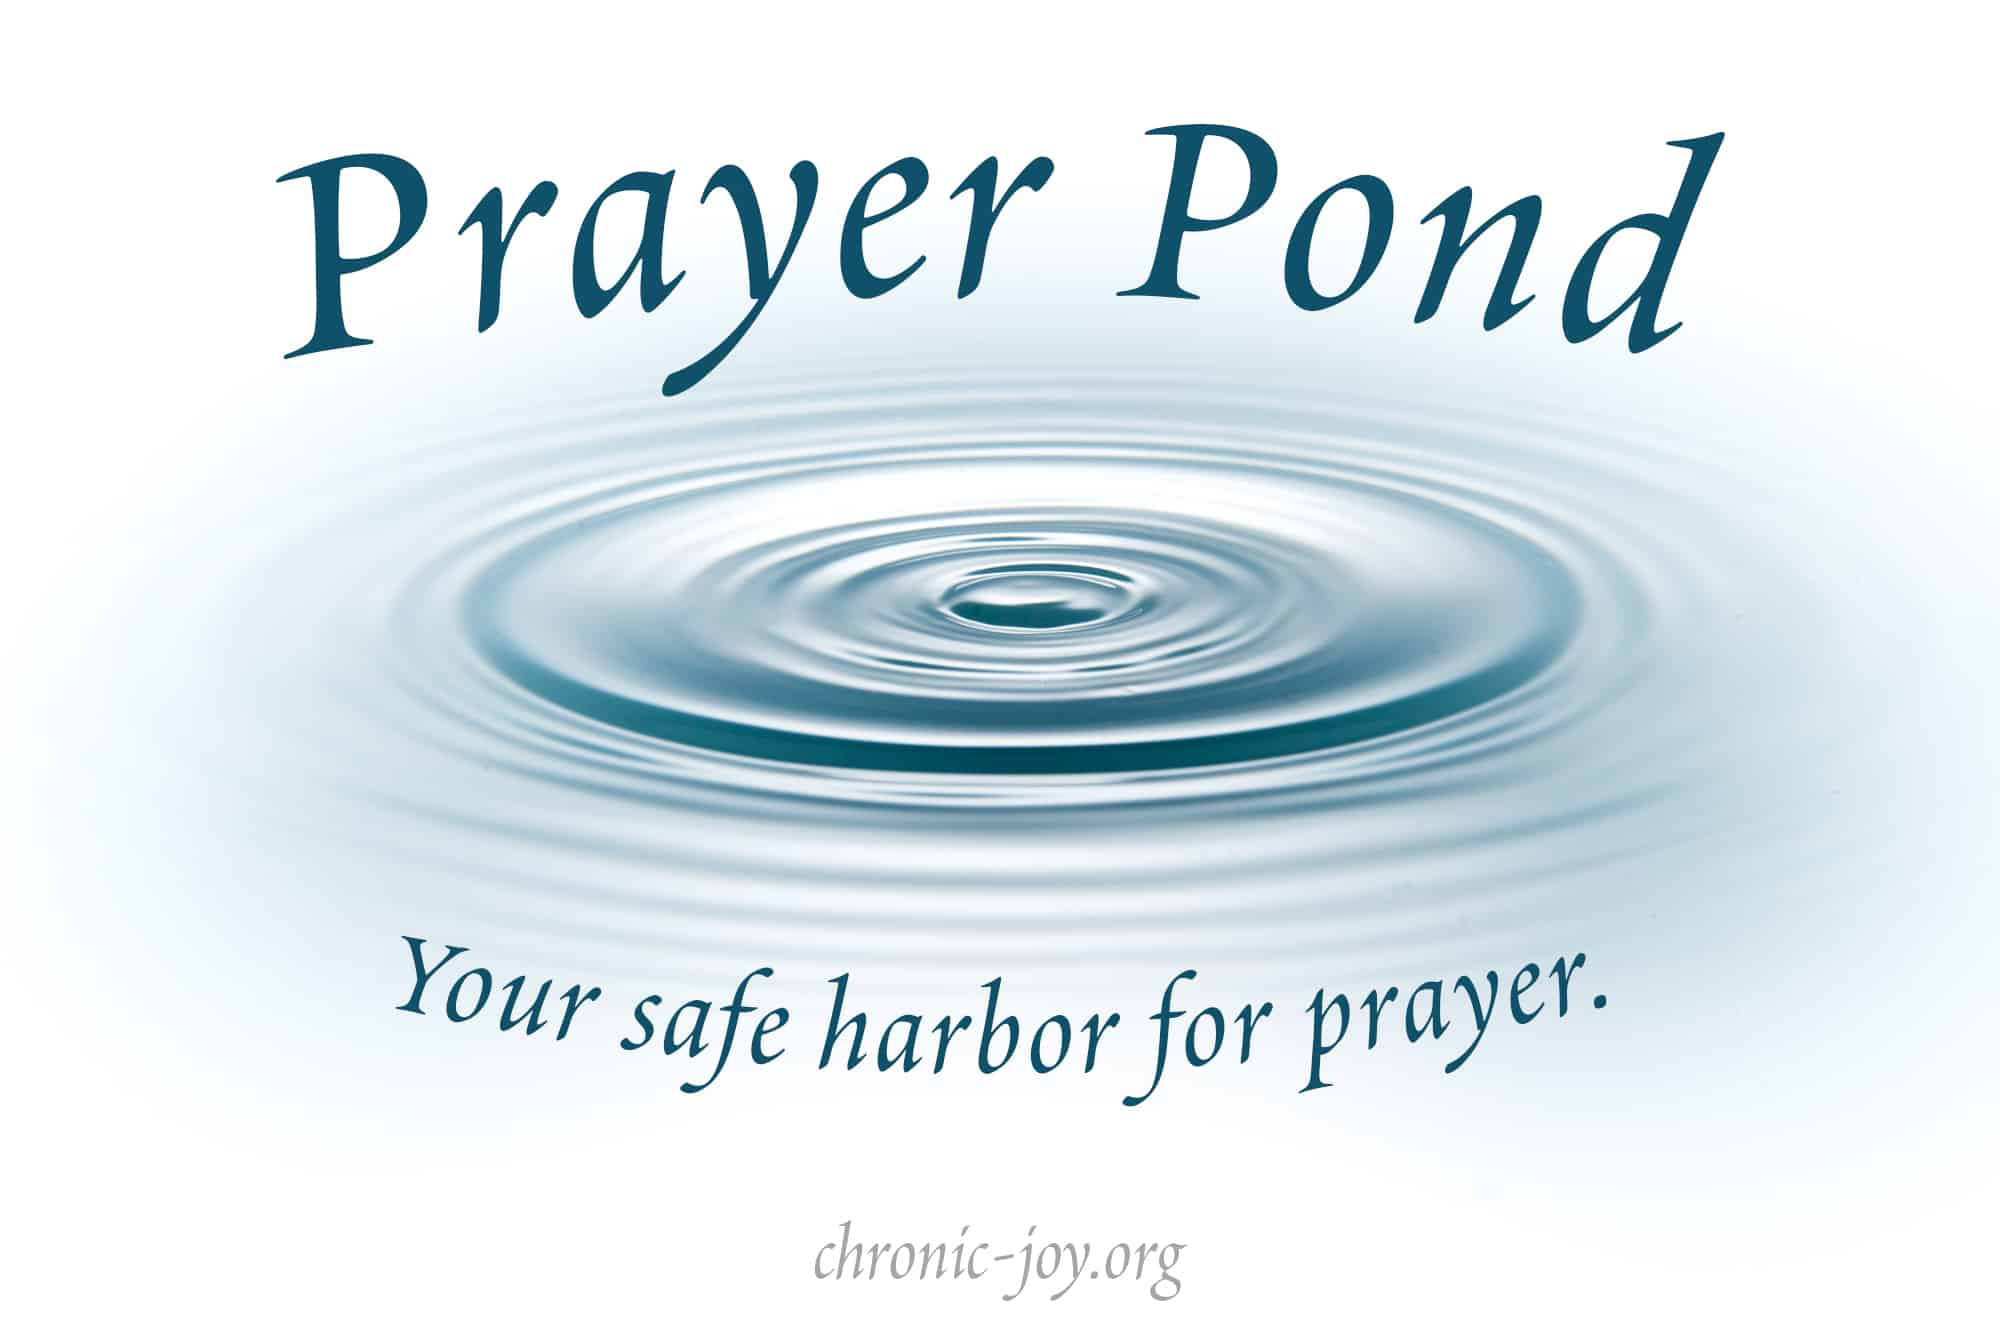 Prayer Pond • Your Safe Harbor for Prayer.